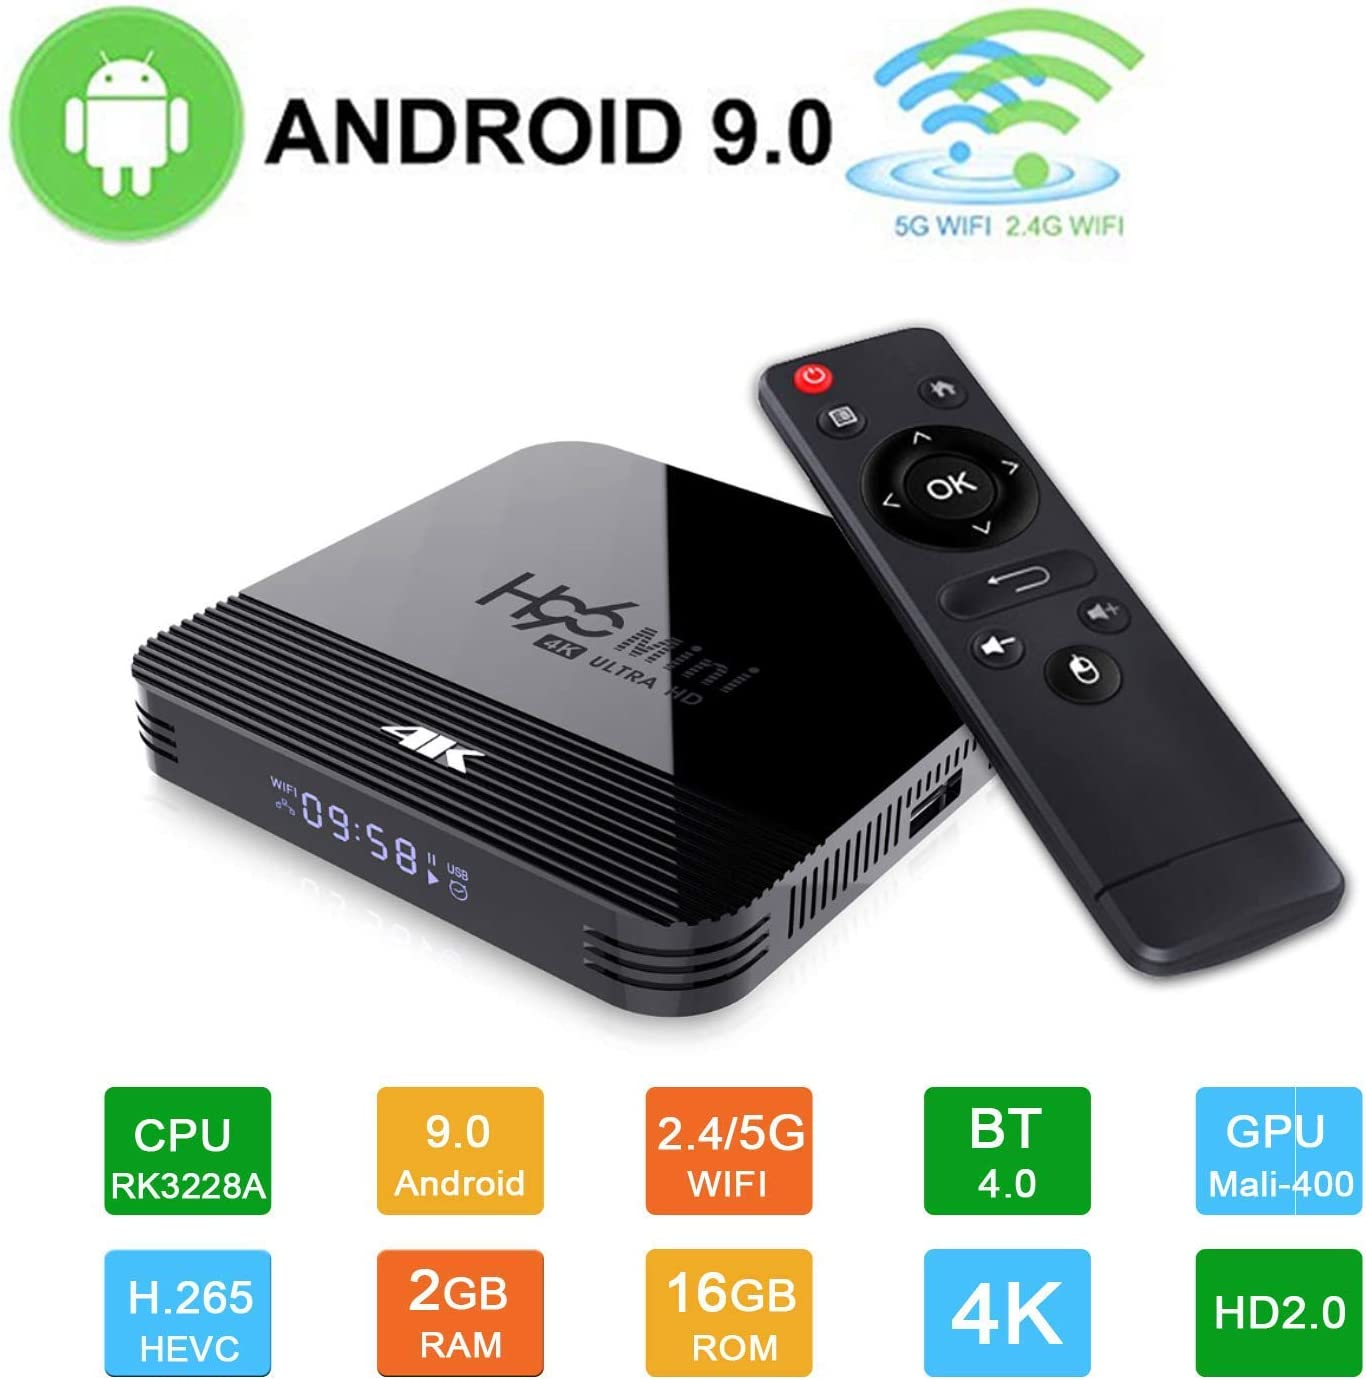 Android 9.0 TV Box H96 MAX Smart Media Box 4K【4GB + 64GB】 Quad Core H.265 Ultra HD 2.4G/5GHz WiFi Supports HDMI / 3D 100M Ethernet Family USB 3.0 Video Play Box: Amazon.es: